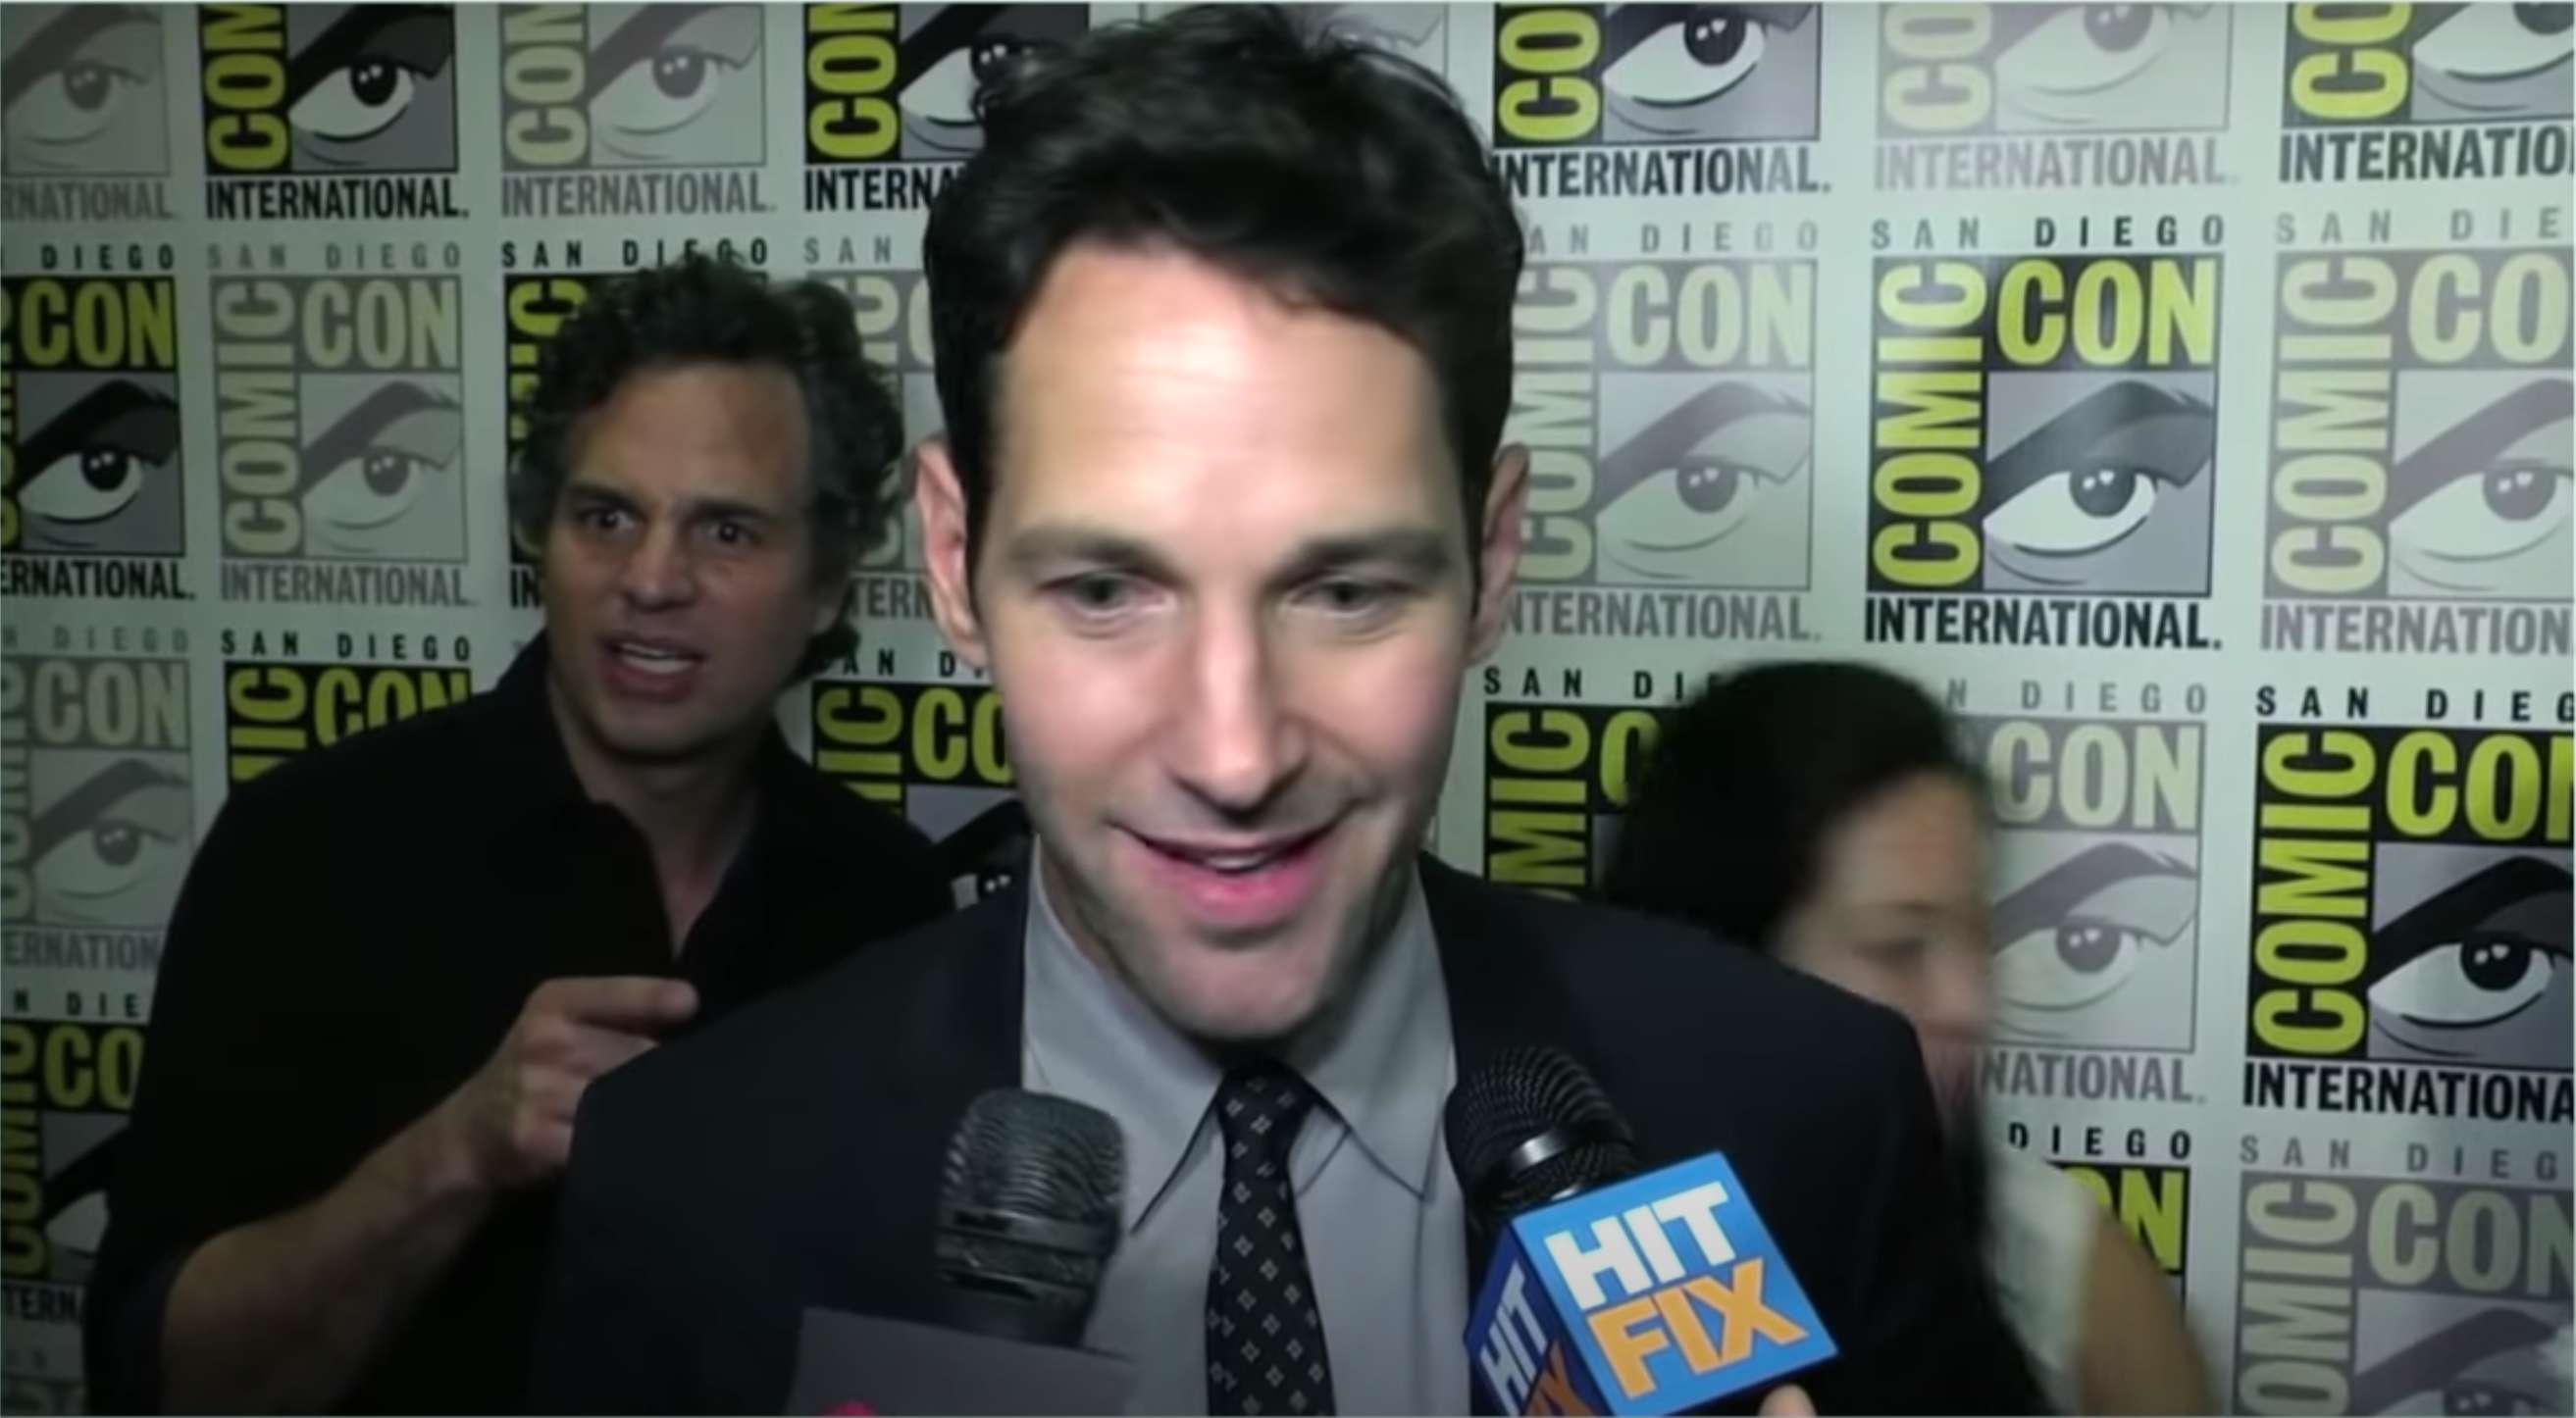 3. Mark Ruffalo And Paul Rudd from Avengers met At the 2014 Comic-Con. Mark was starstruck seeing Paul and passed behind him.